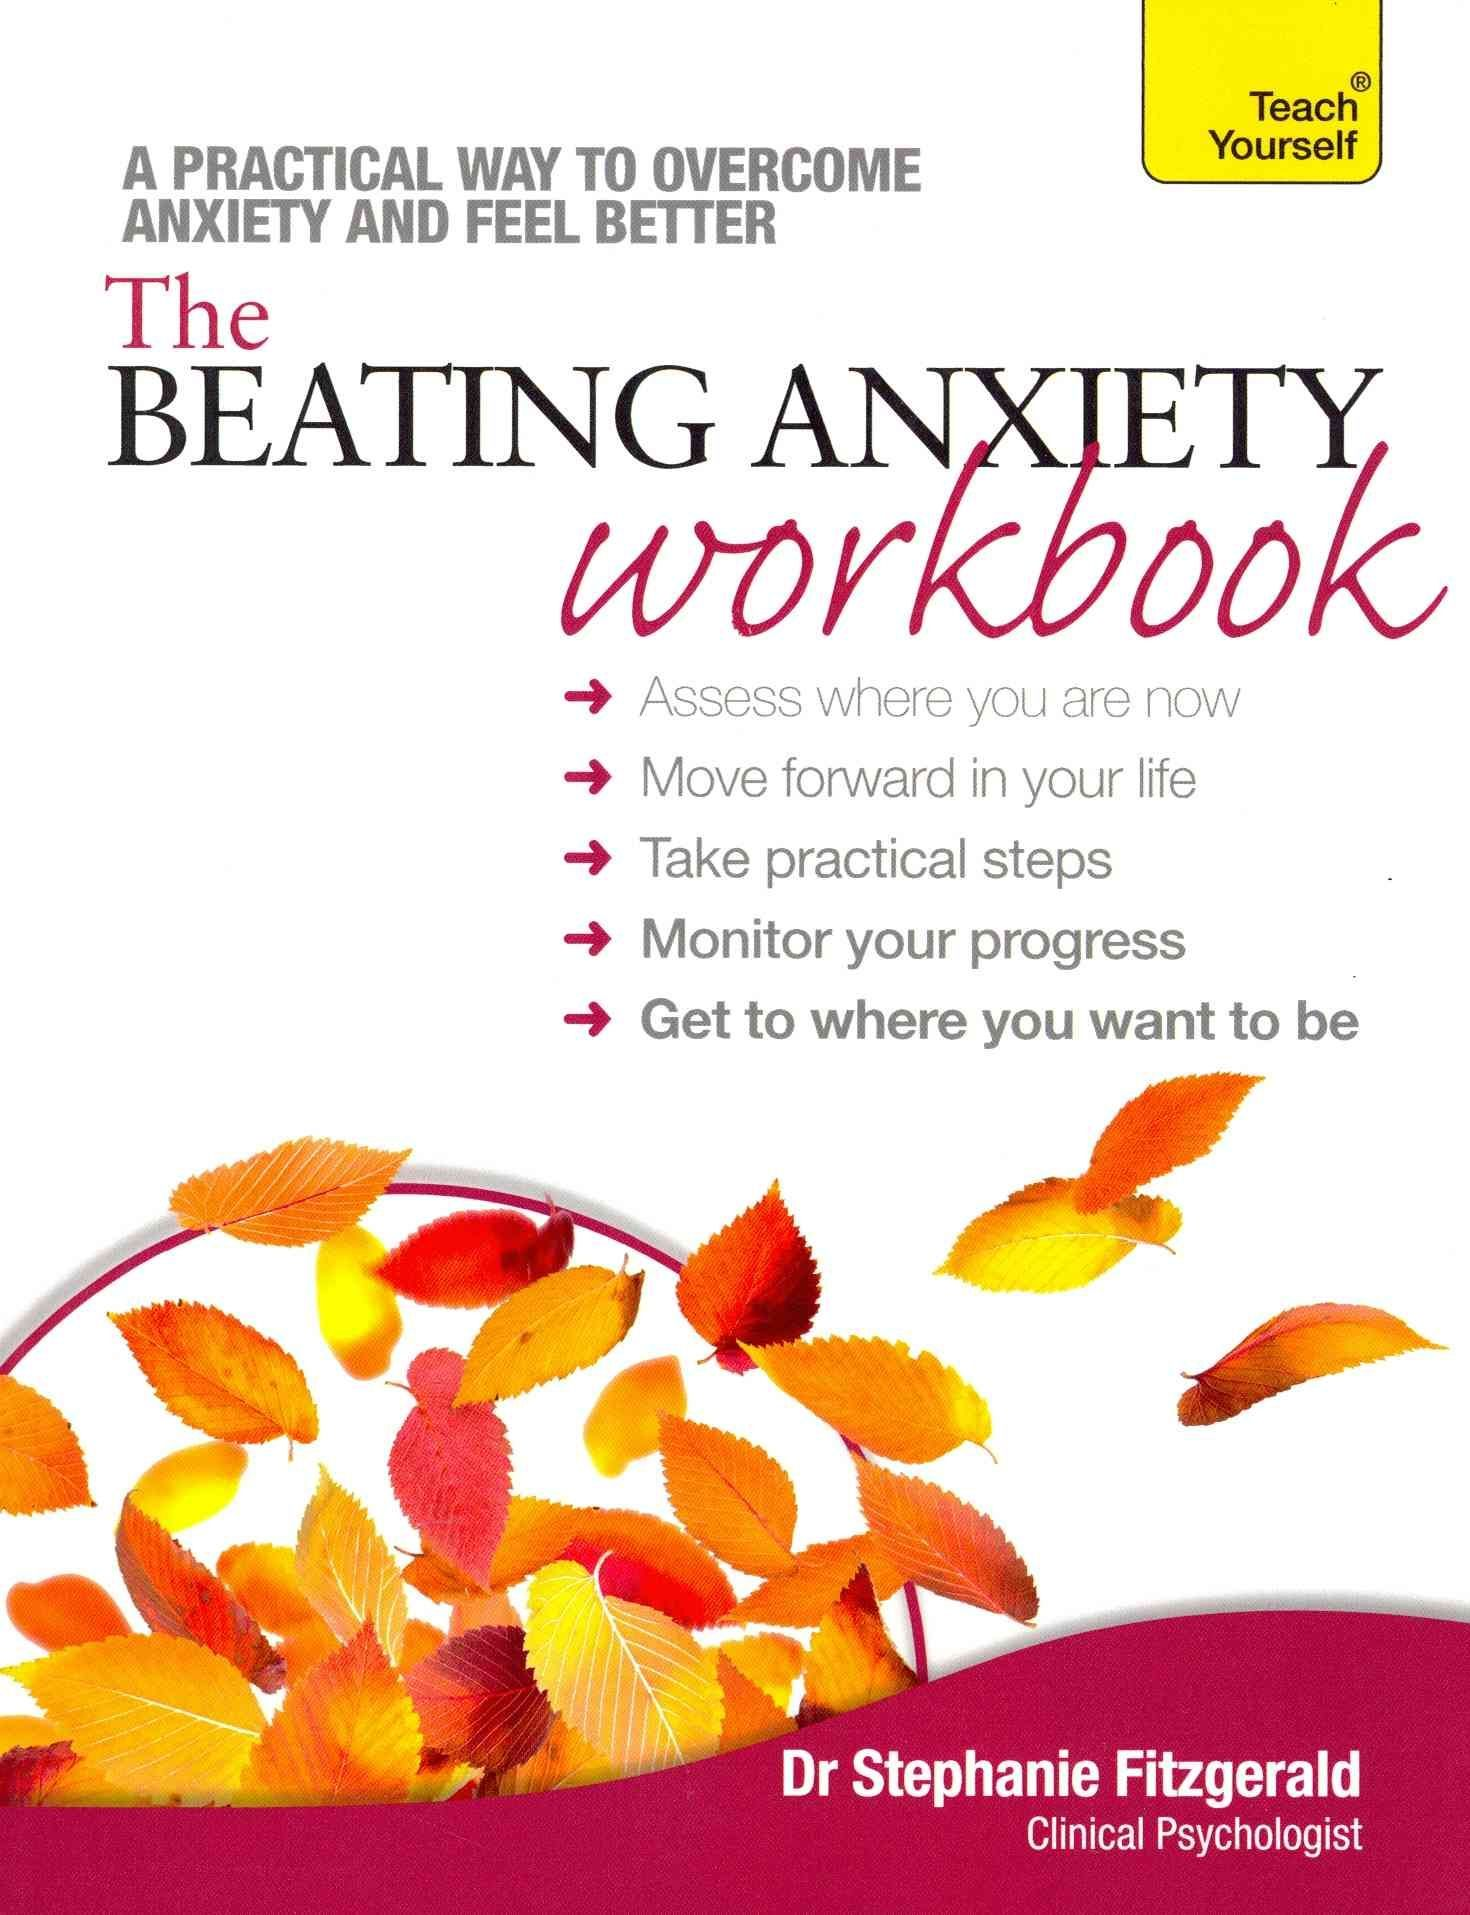 Are you suffering from anxiety? Do you want to learn techniques for overcoming troubling thoughts and feelings of fear? Would you like lasting strategies to help you stay anxiety-free for good? This w